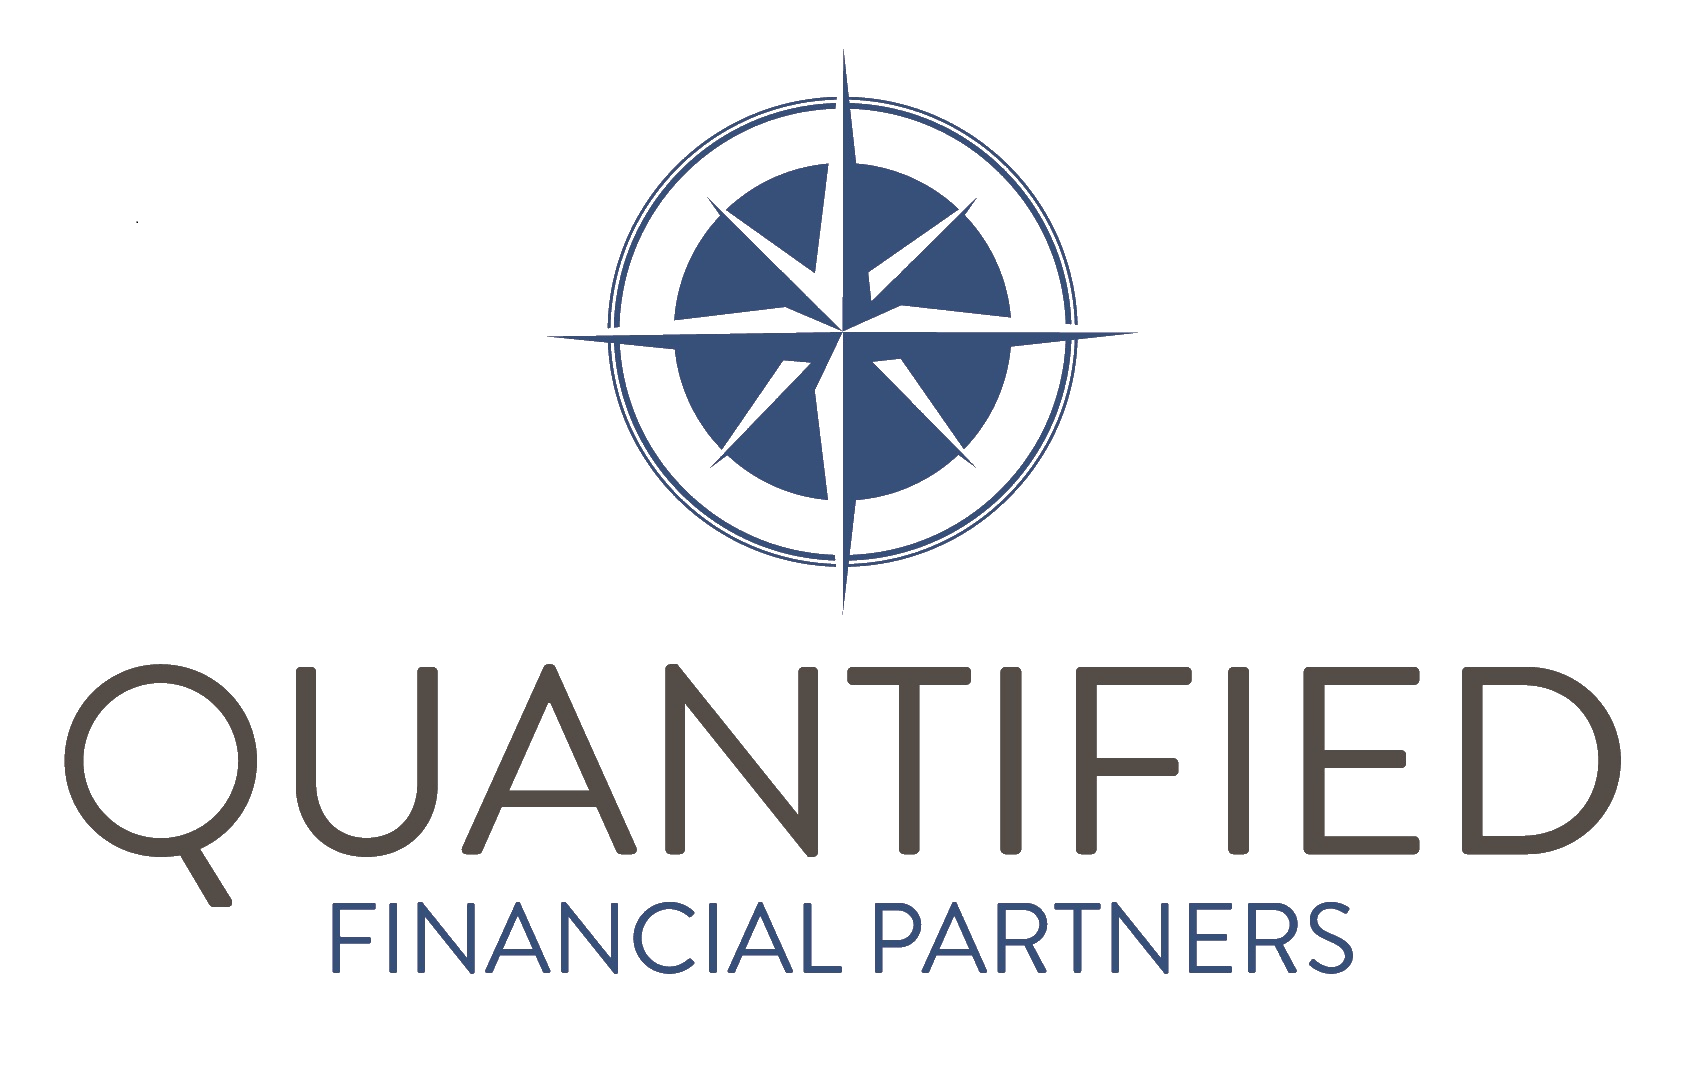 Logo for Quantified Financial Partners